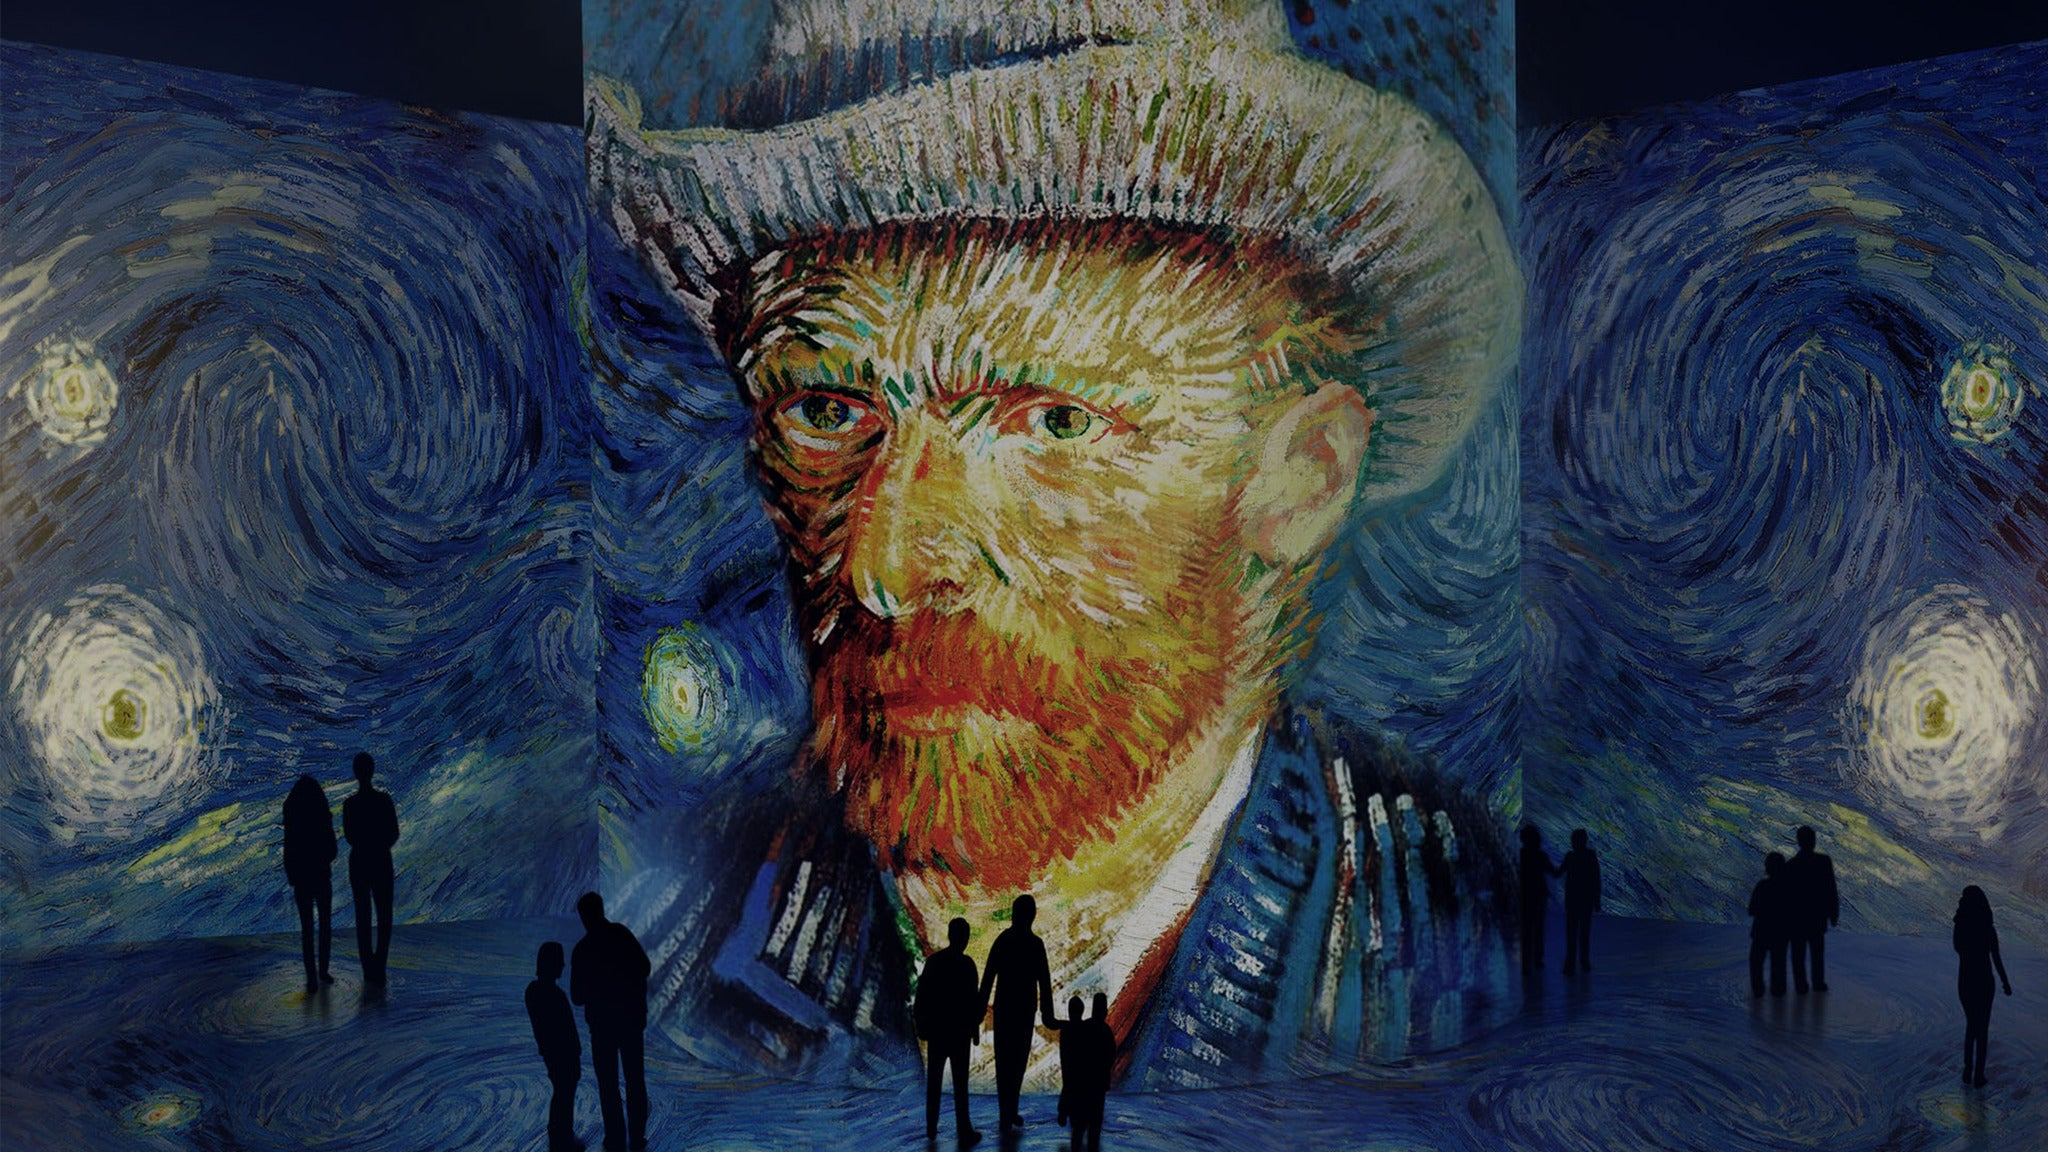 SORRY, THIS EVENT IS NO LONGER ACTIVE<br>Immersive Van Gogh (Peak) at Lighthouse ArtSpace Chicago - Chicago, IL 60610